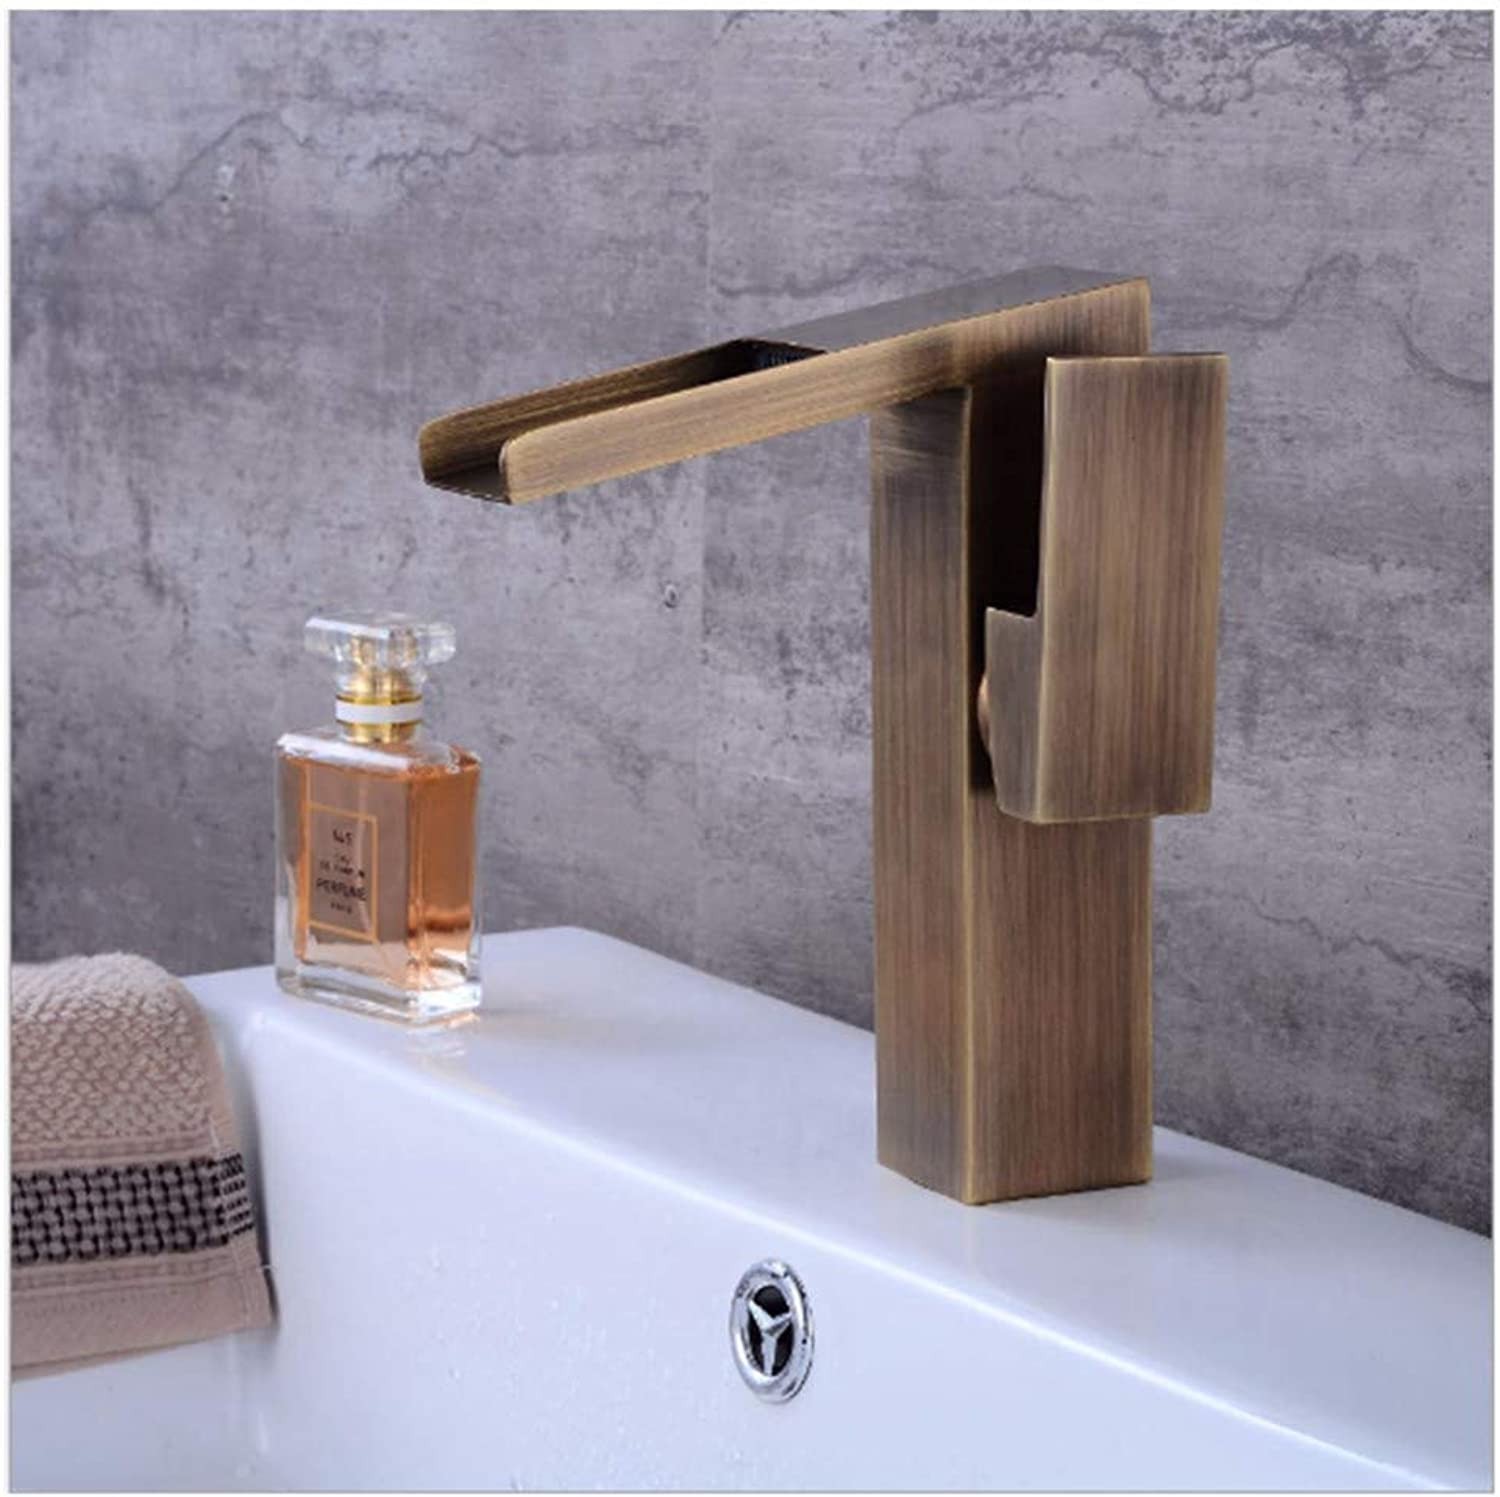 Lenrtu European Style Drawing Retro Faucet With Waterfall Pure Vintage Brass Polished Water Tap Washbasin Sink 1 Handle Single Hole Mixer Tap For Bathroom